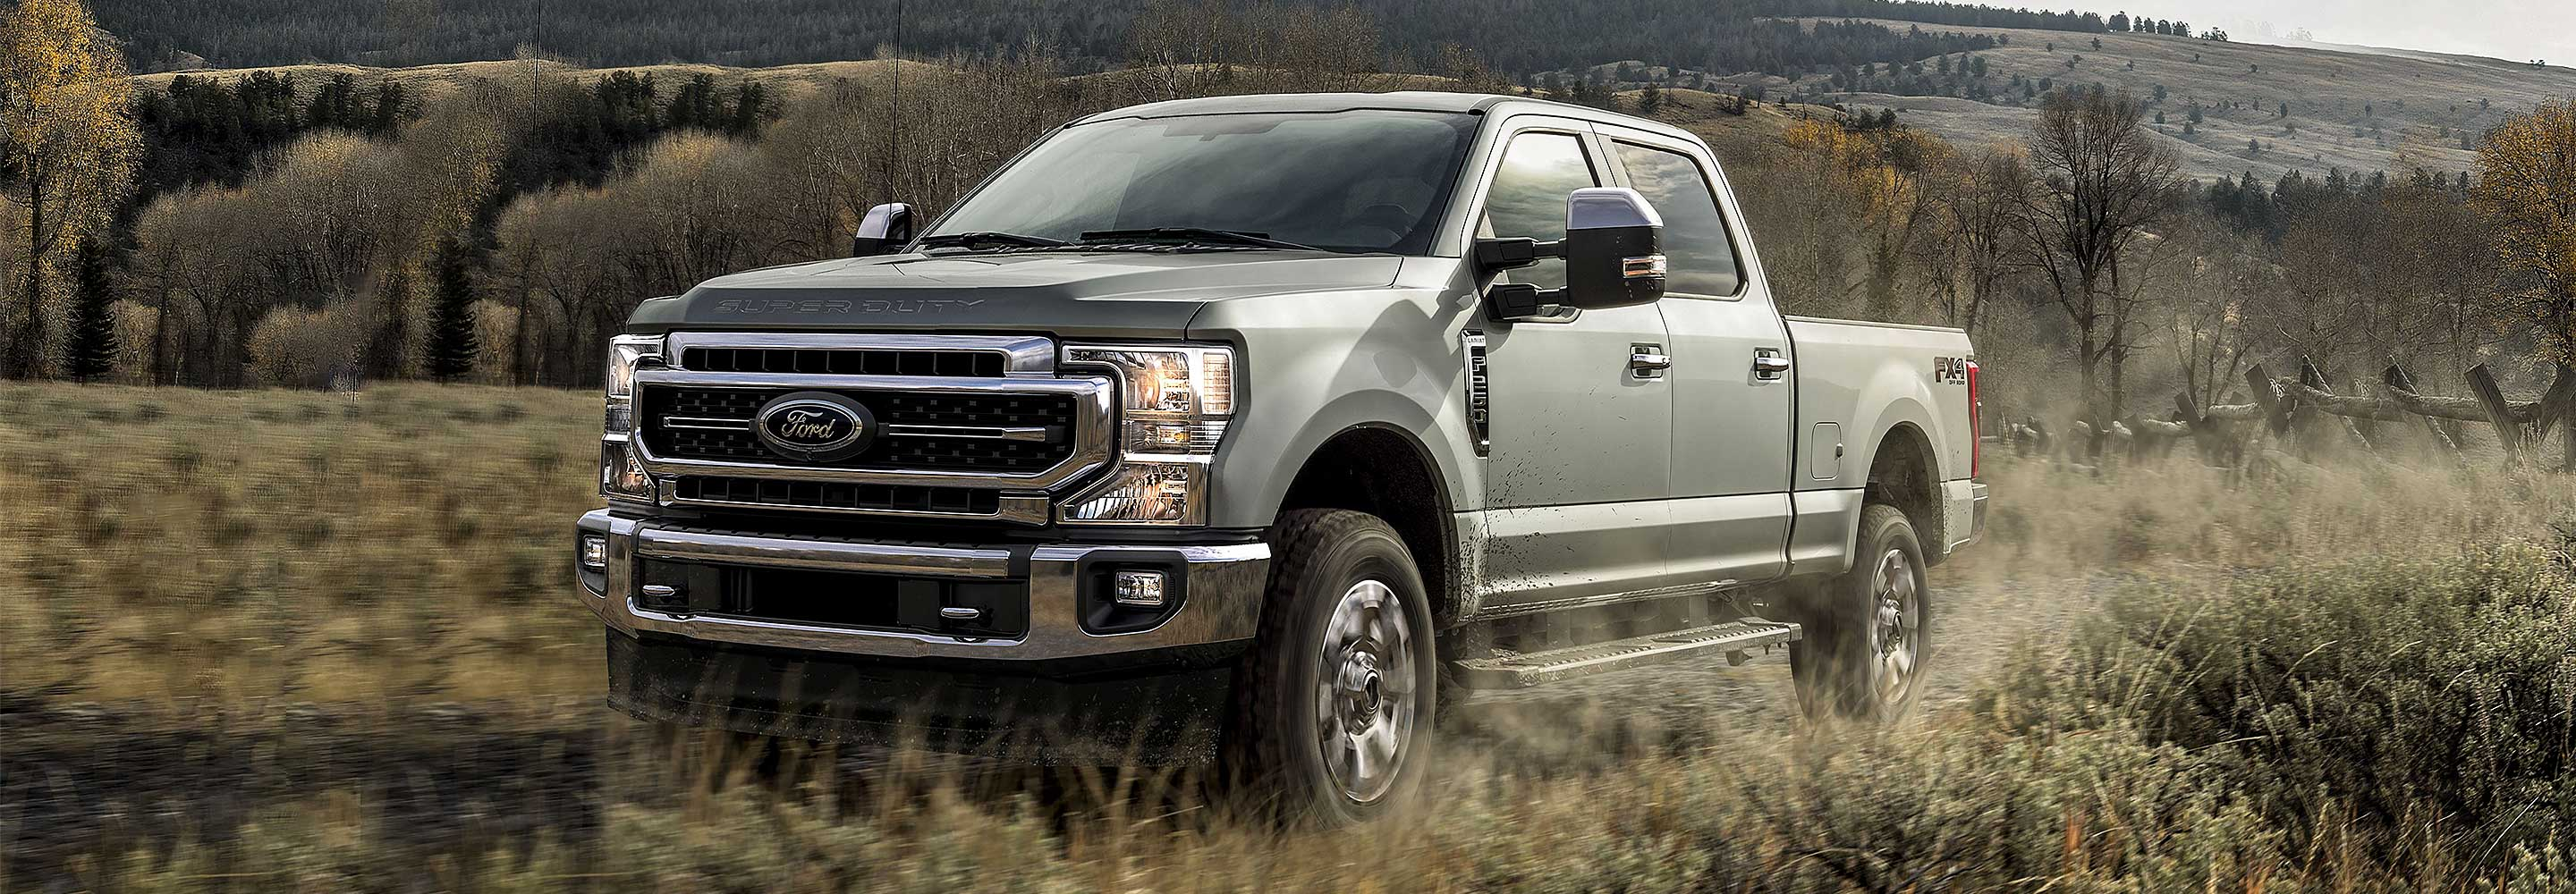 The 2020 F Series Super Duty Hilltop Ford